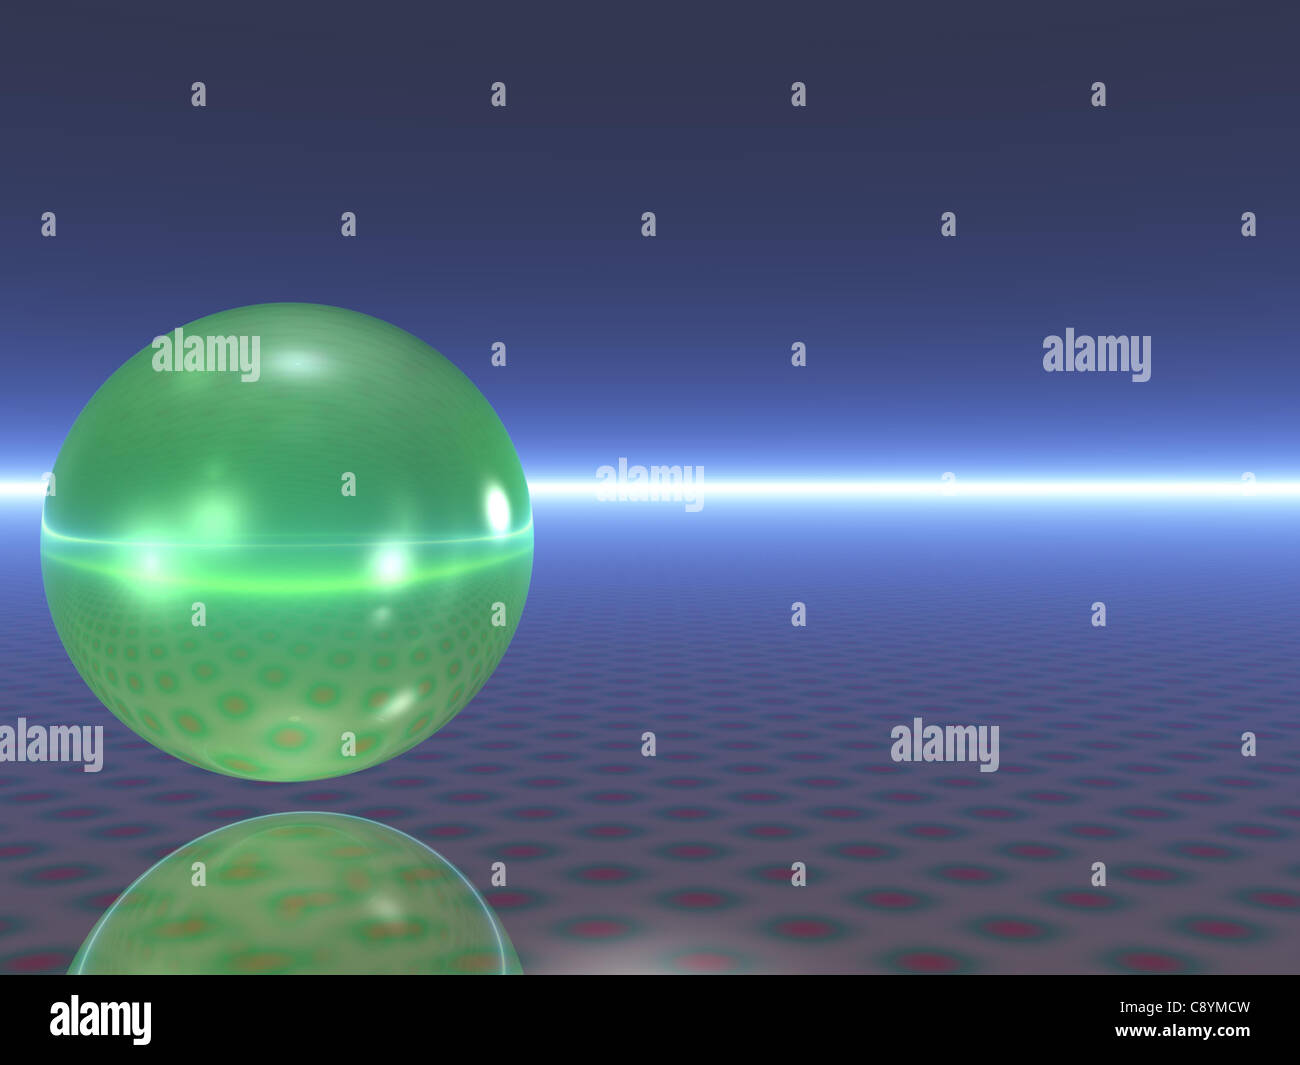 Abstract light reflecting sphere (CGI) - Stock Image